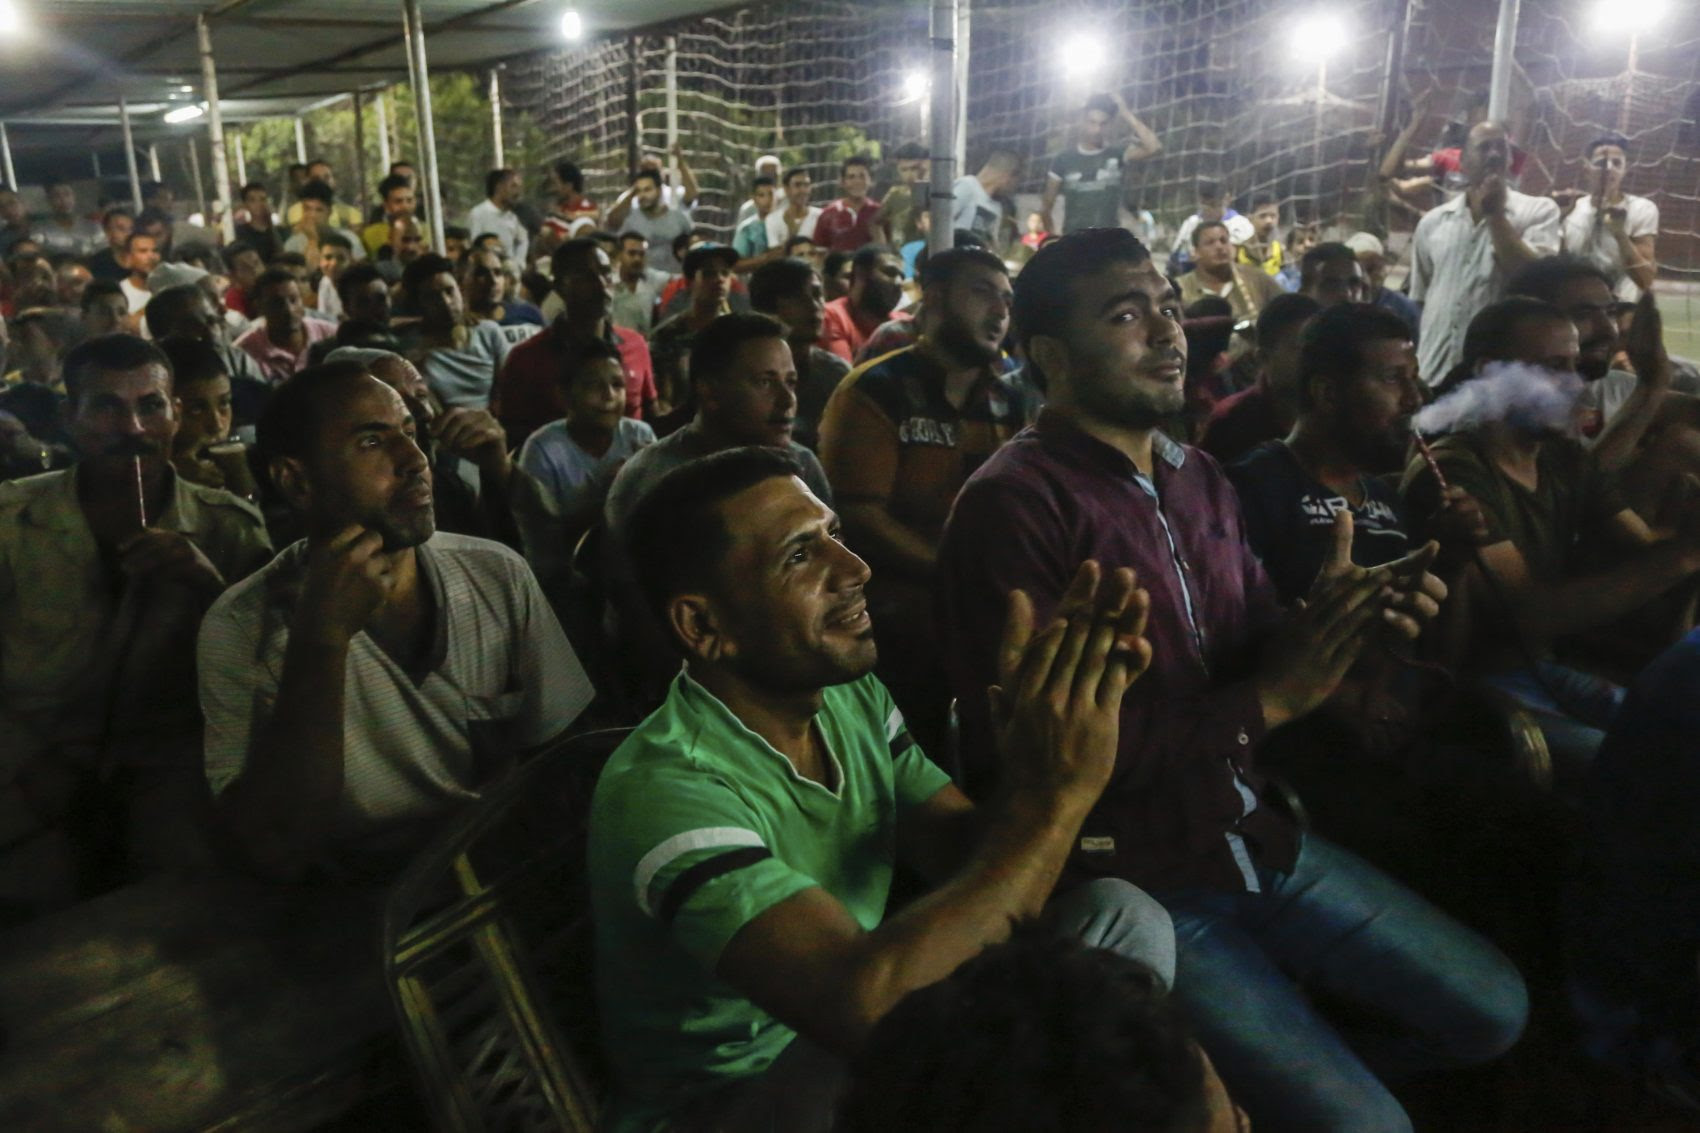 Egyptian fans watch the Egypt-Russia World Cup game in the hometown of Mohammed Salah. (Islam Safwat/AP)